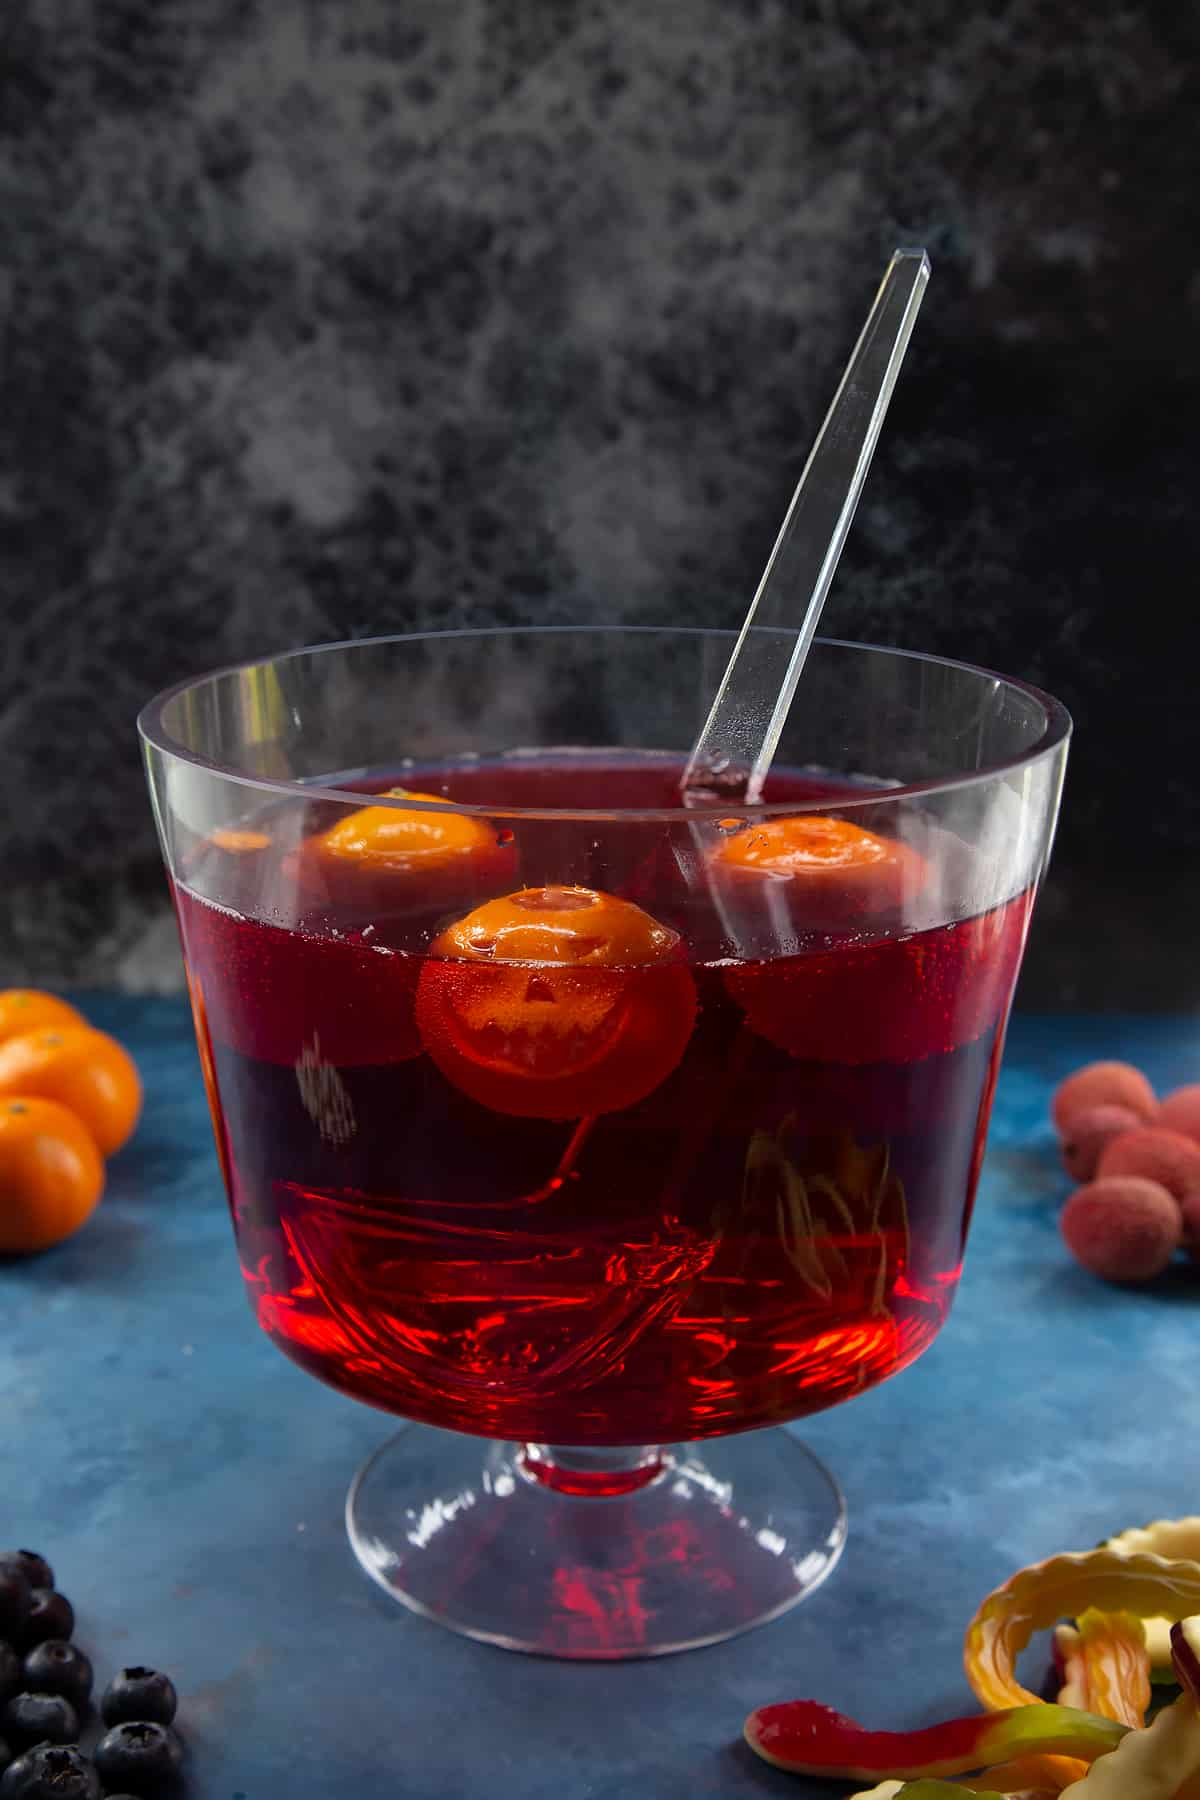 A glass punch bowl with ladle. It's filled with cranberry juice and lemonade. Jack'o'lantern clementines float in the liquid. Ingredients to make Halloween punch surround the bowl.